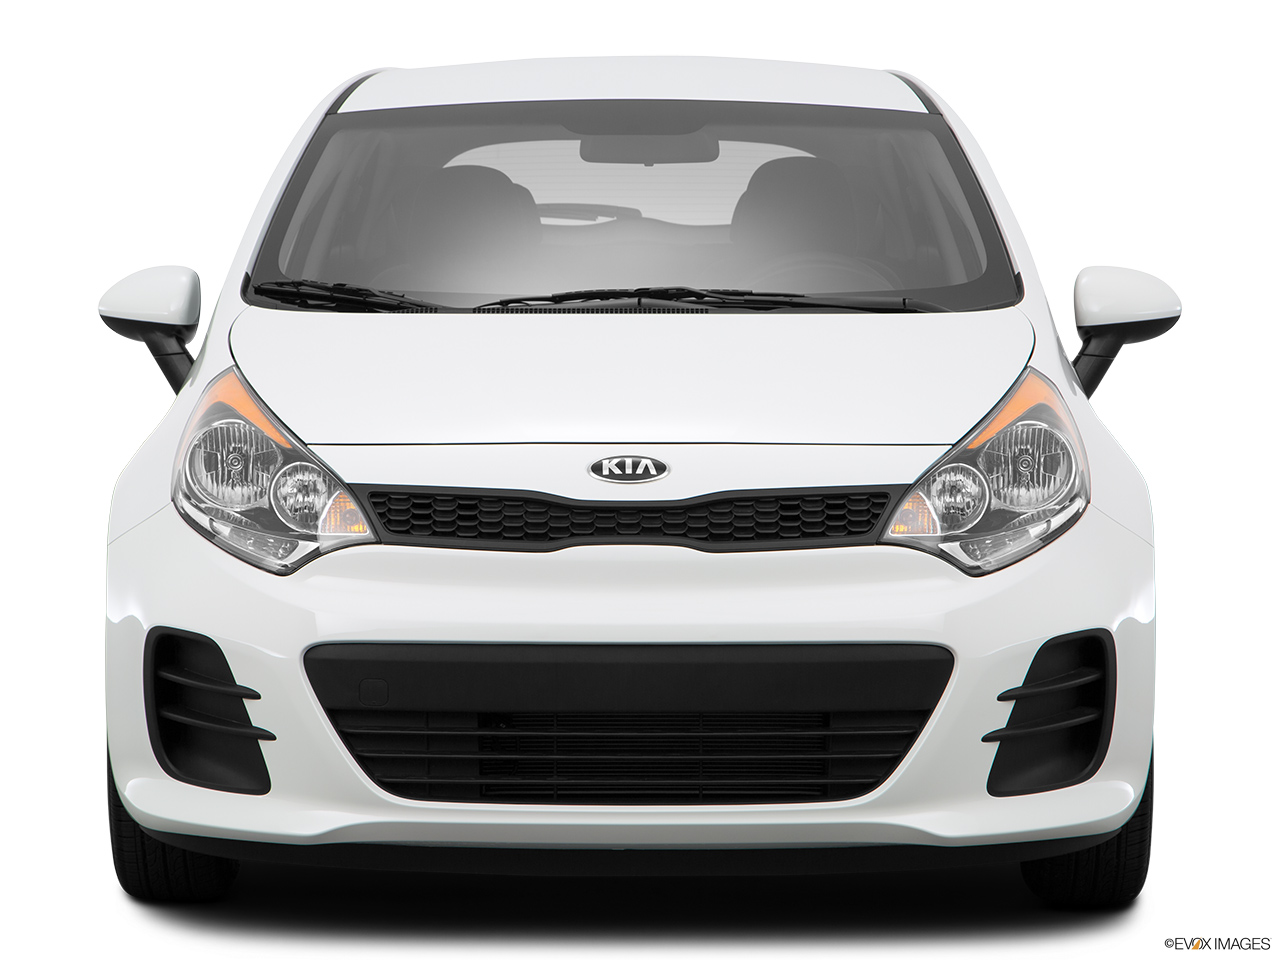 kia rio hatchback 2017 1 4 mid option in qatar new car. Black Bedroom Furniture Sets. Home Design Ideas